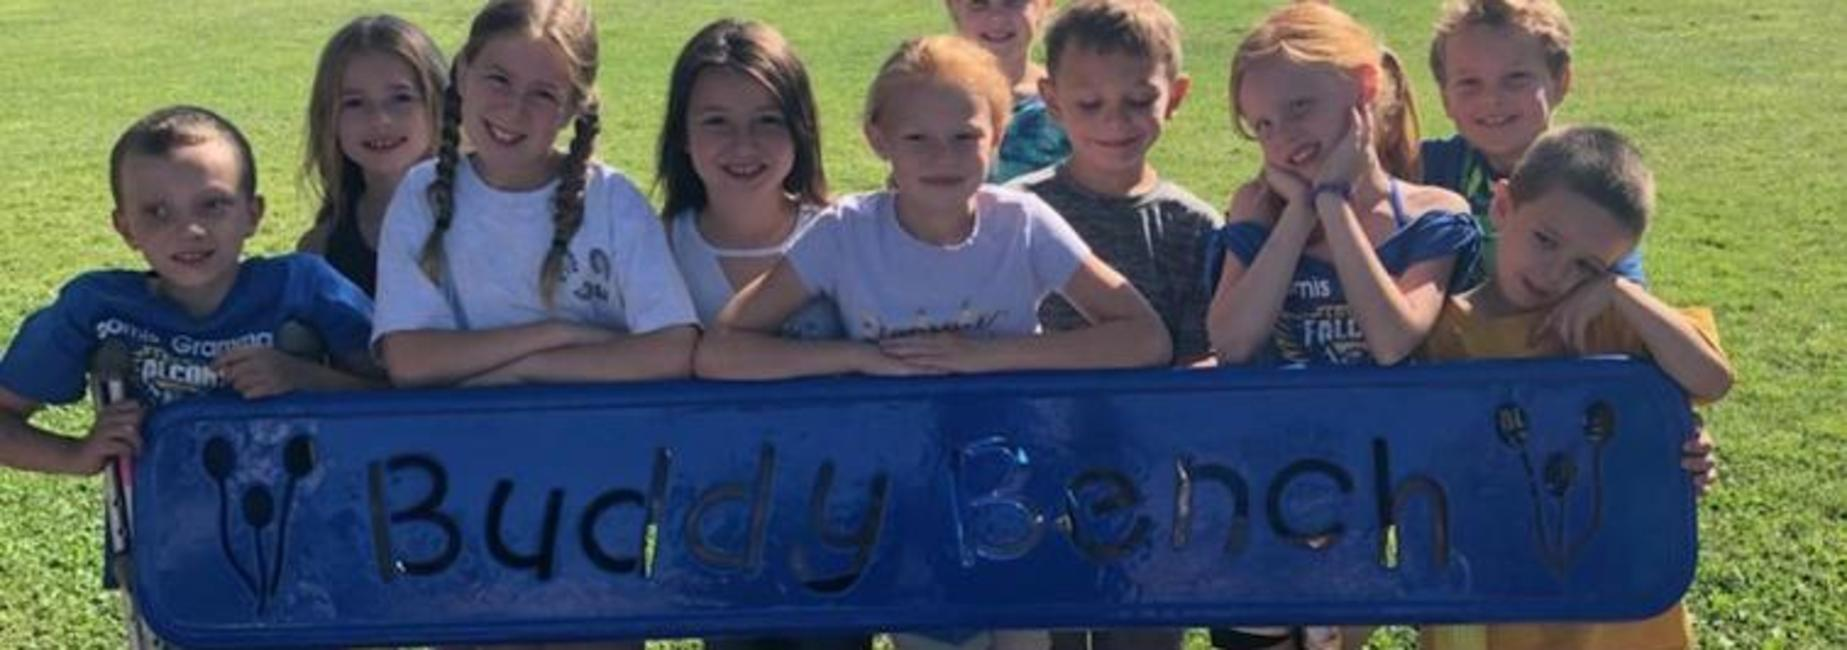 Students on Buddy Bench